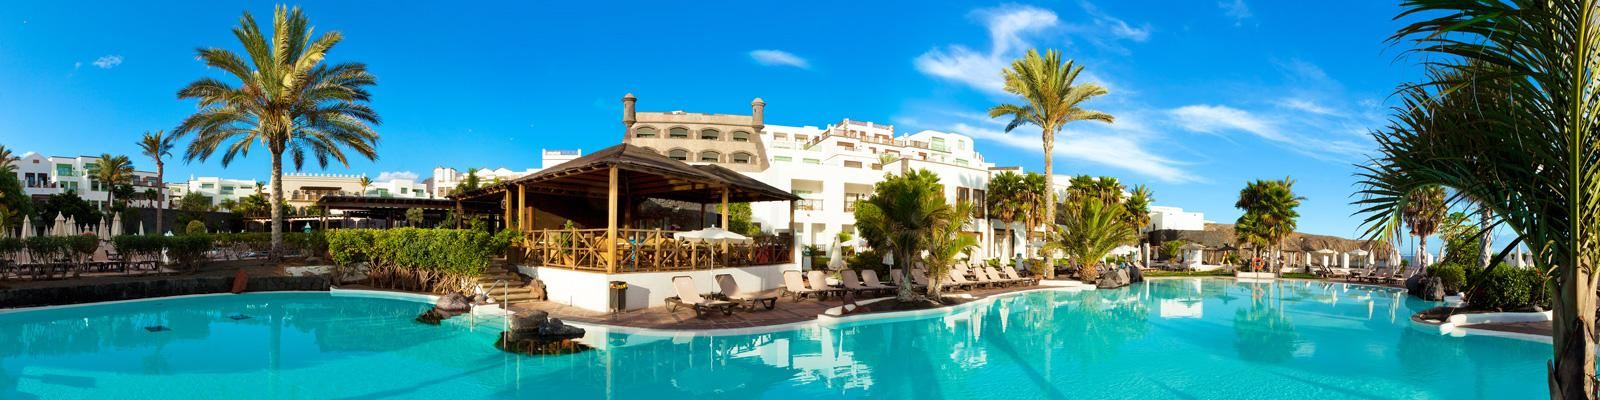 Dream Castillo 5* Hotel - Playa Blanca Lanzarote